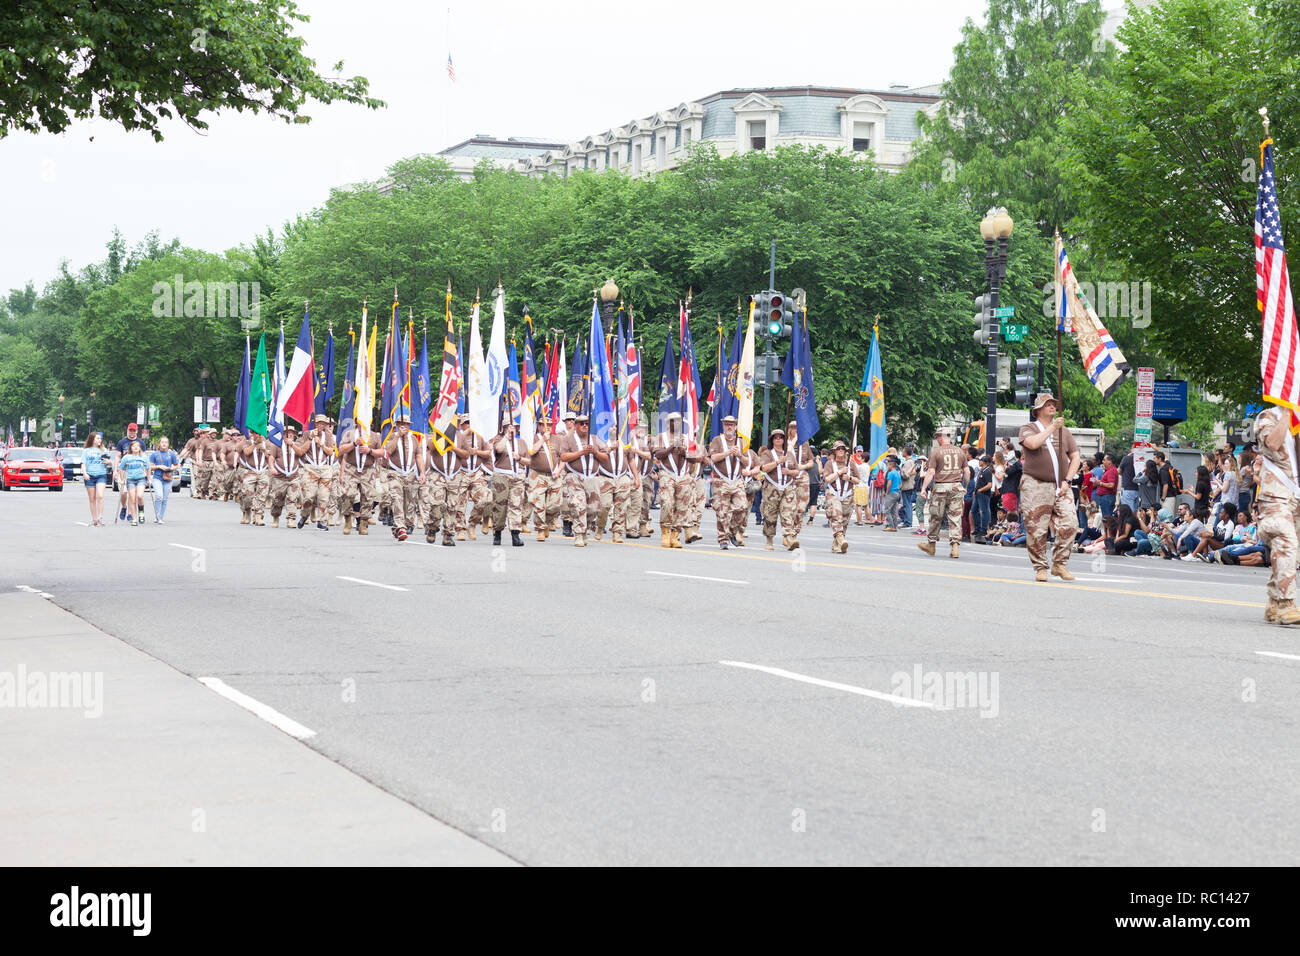 Washington, D.C., USA - May 28, 2018: The National Memorial Day Parade, Veterans of Operation Desert Storm, marching down consitution Avenue - Stock Image